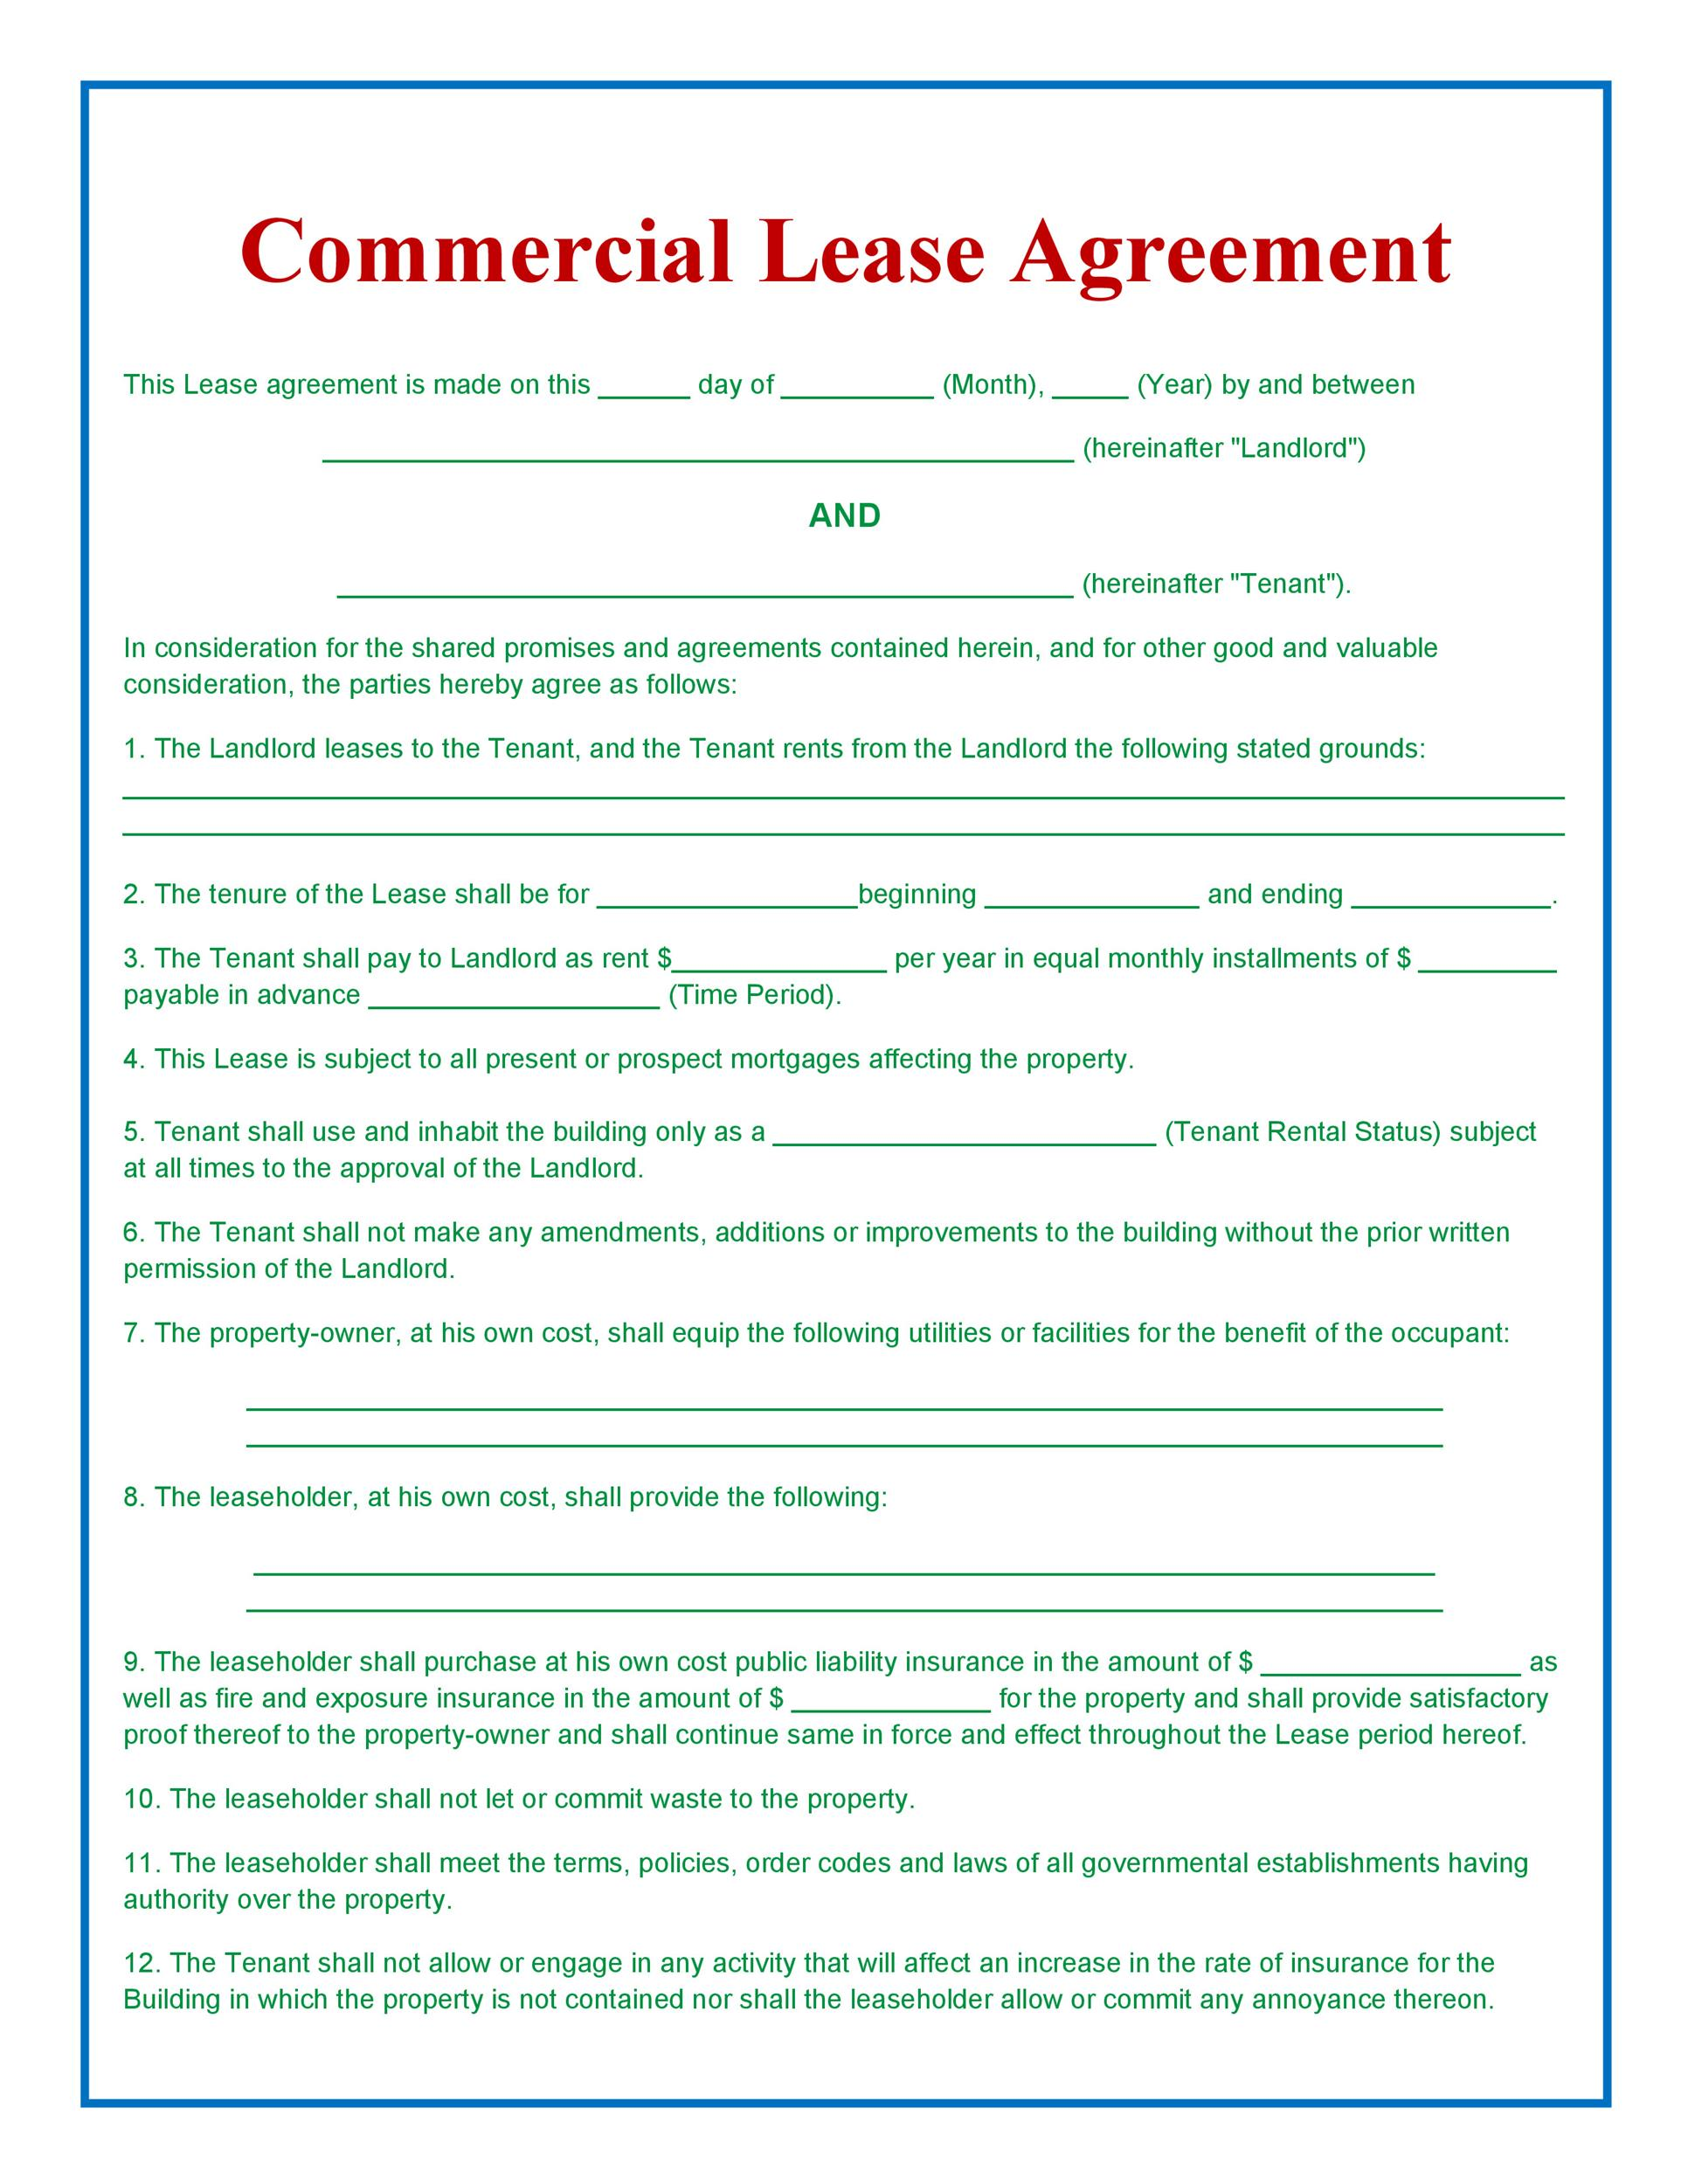 26 Free Commercial Lease Agreement Templates - Template Lab - what is a lease between landlord and tenant